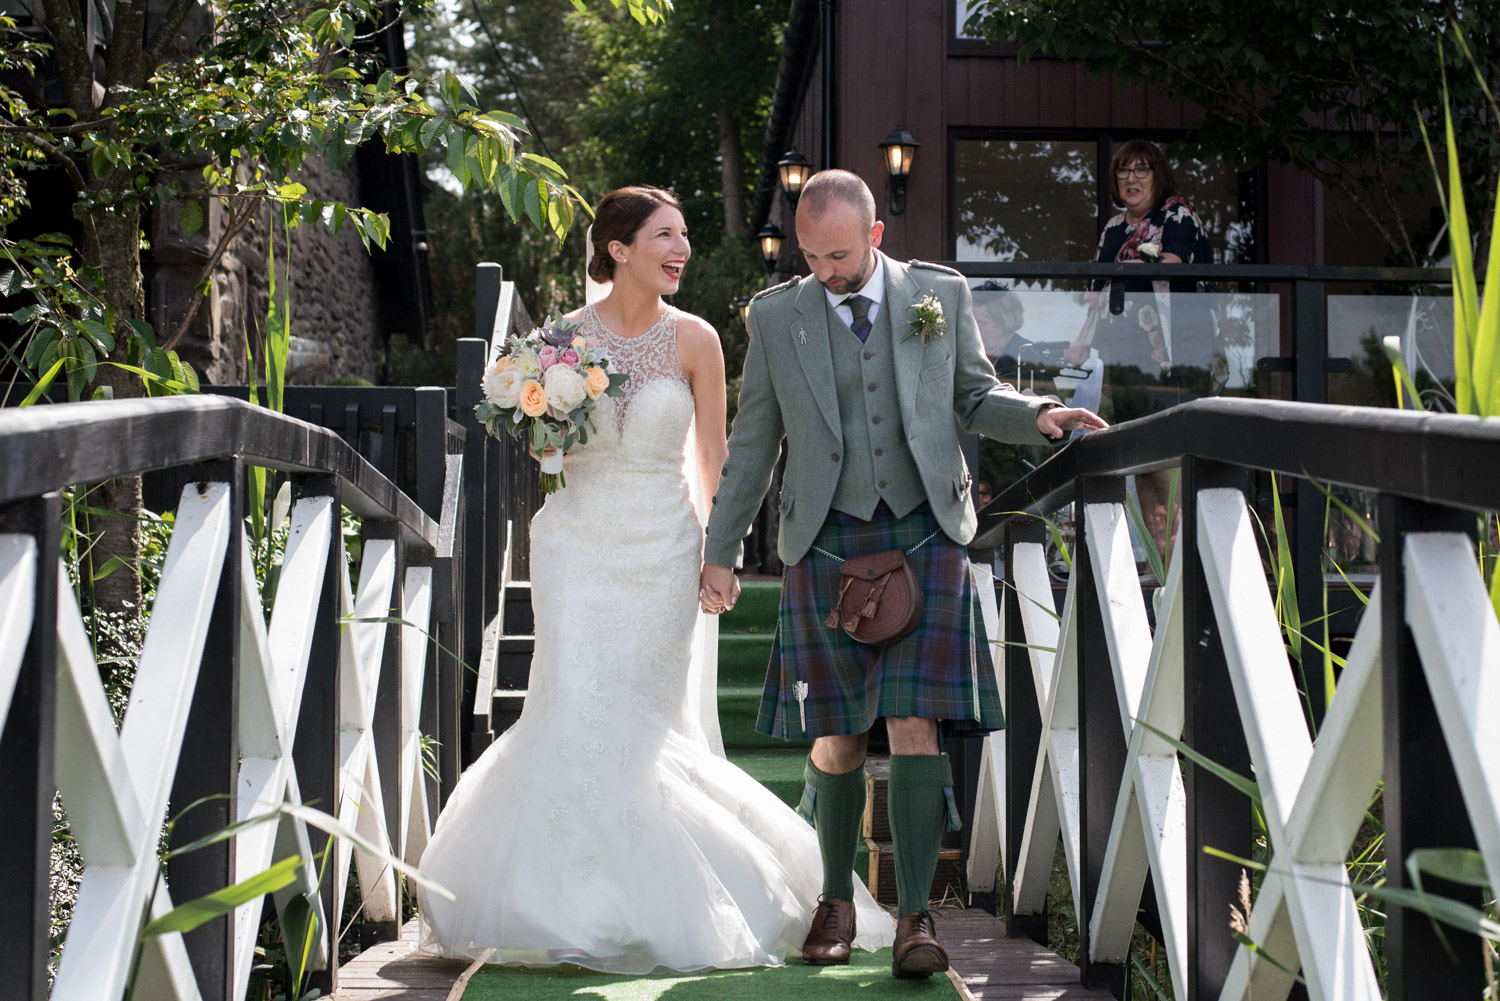 Documentary Wedding Photographer Edinburgh - Forbes of Kingennie